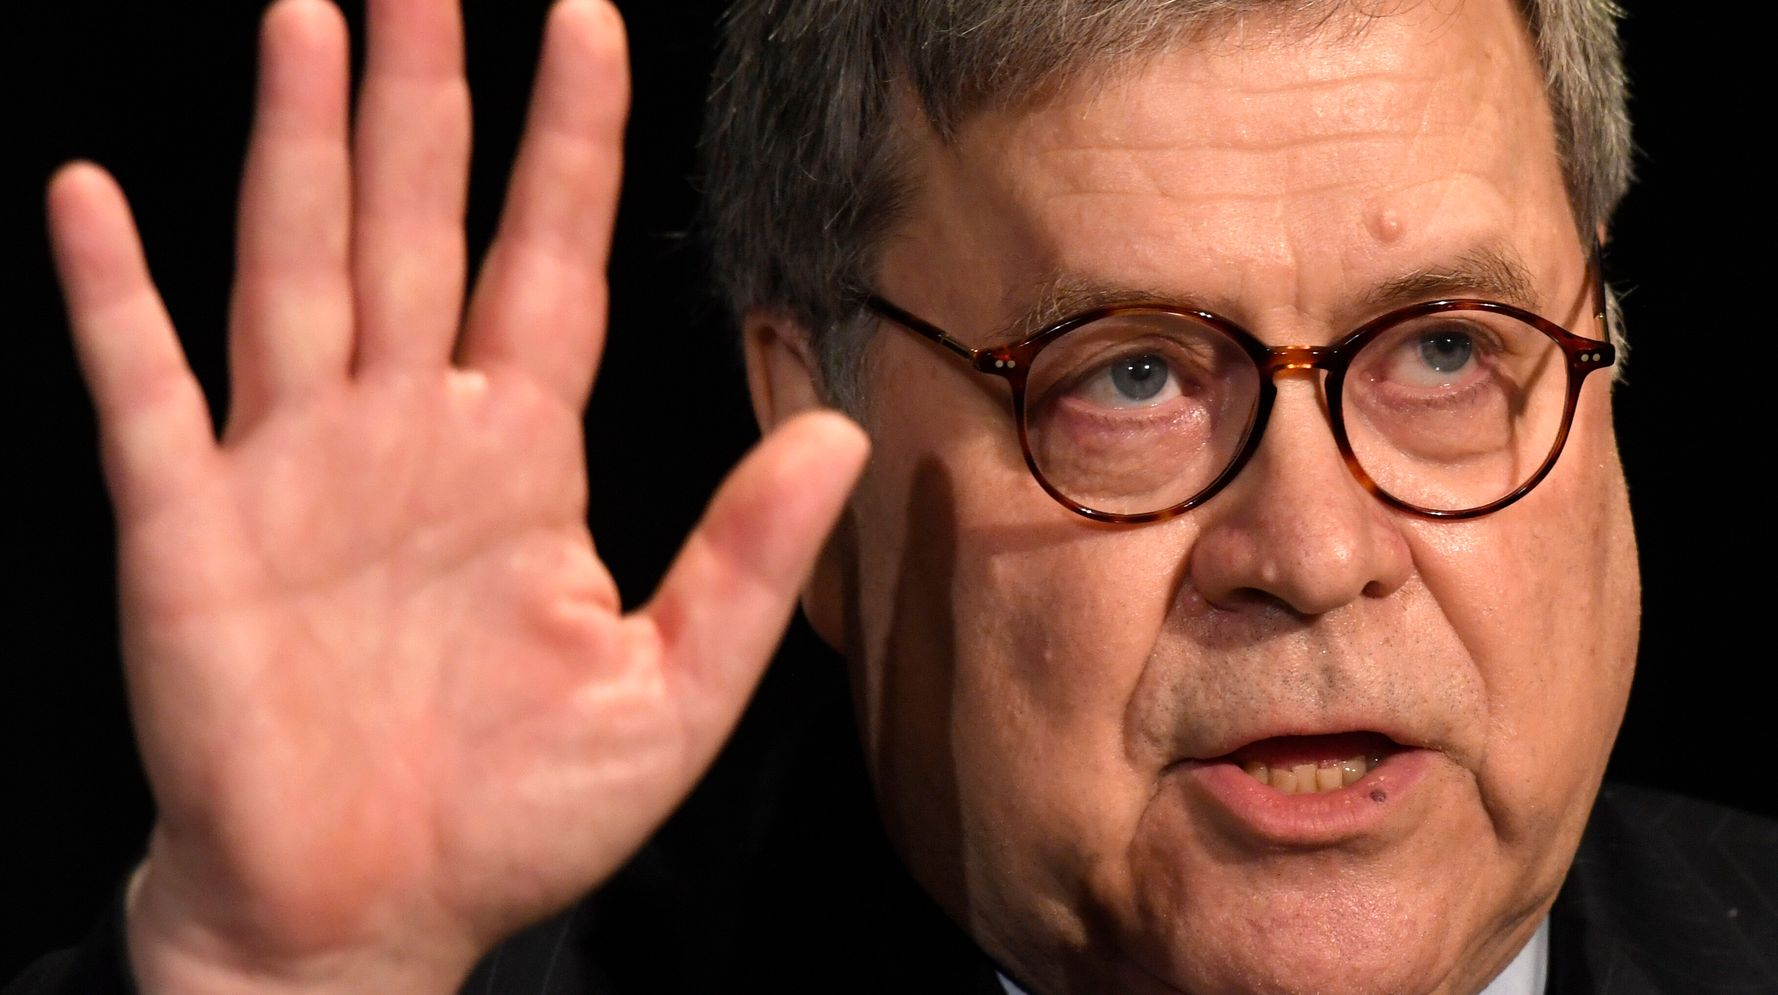 U.S. Judges Call Emergency Meeting Over Fears About William Barr And Trump: Report